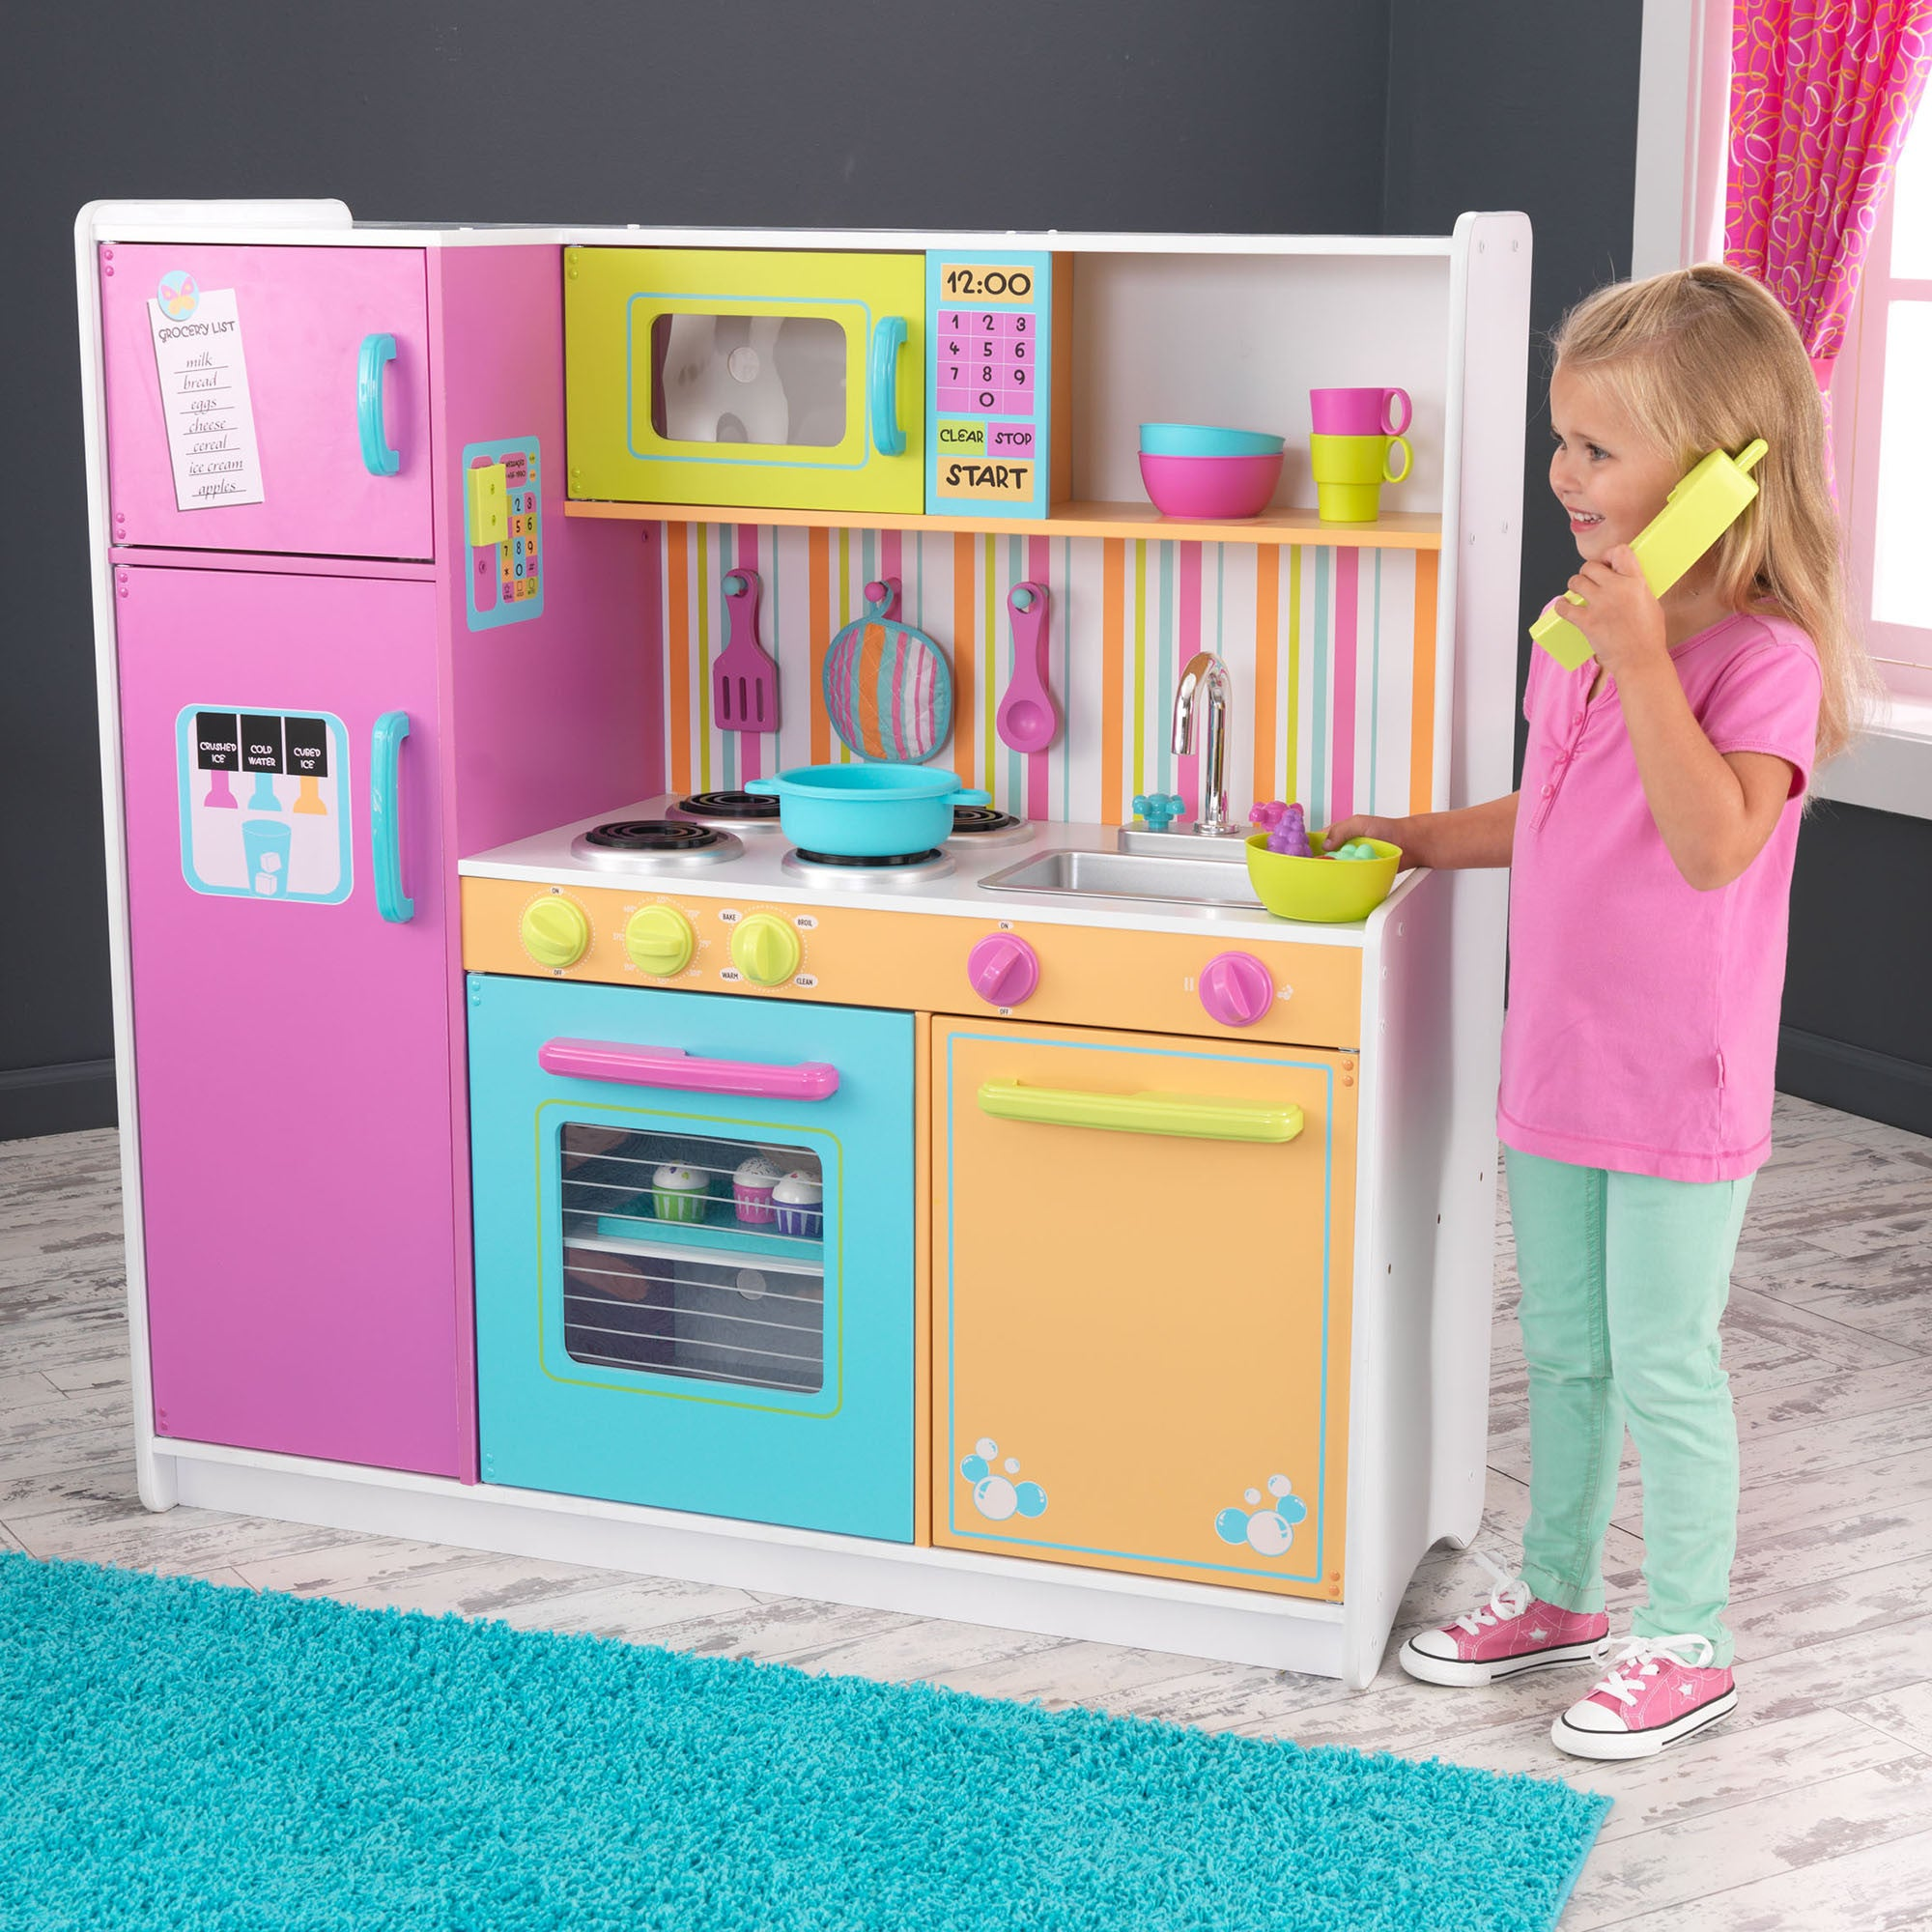 Kidkraft Big and Bright Kitchen for Kids